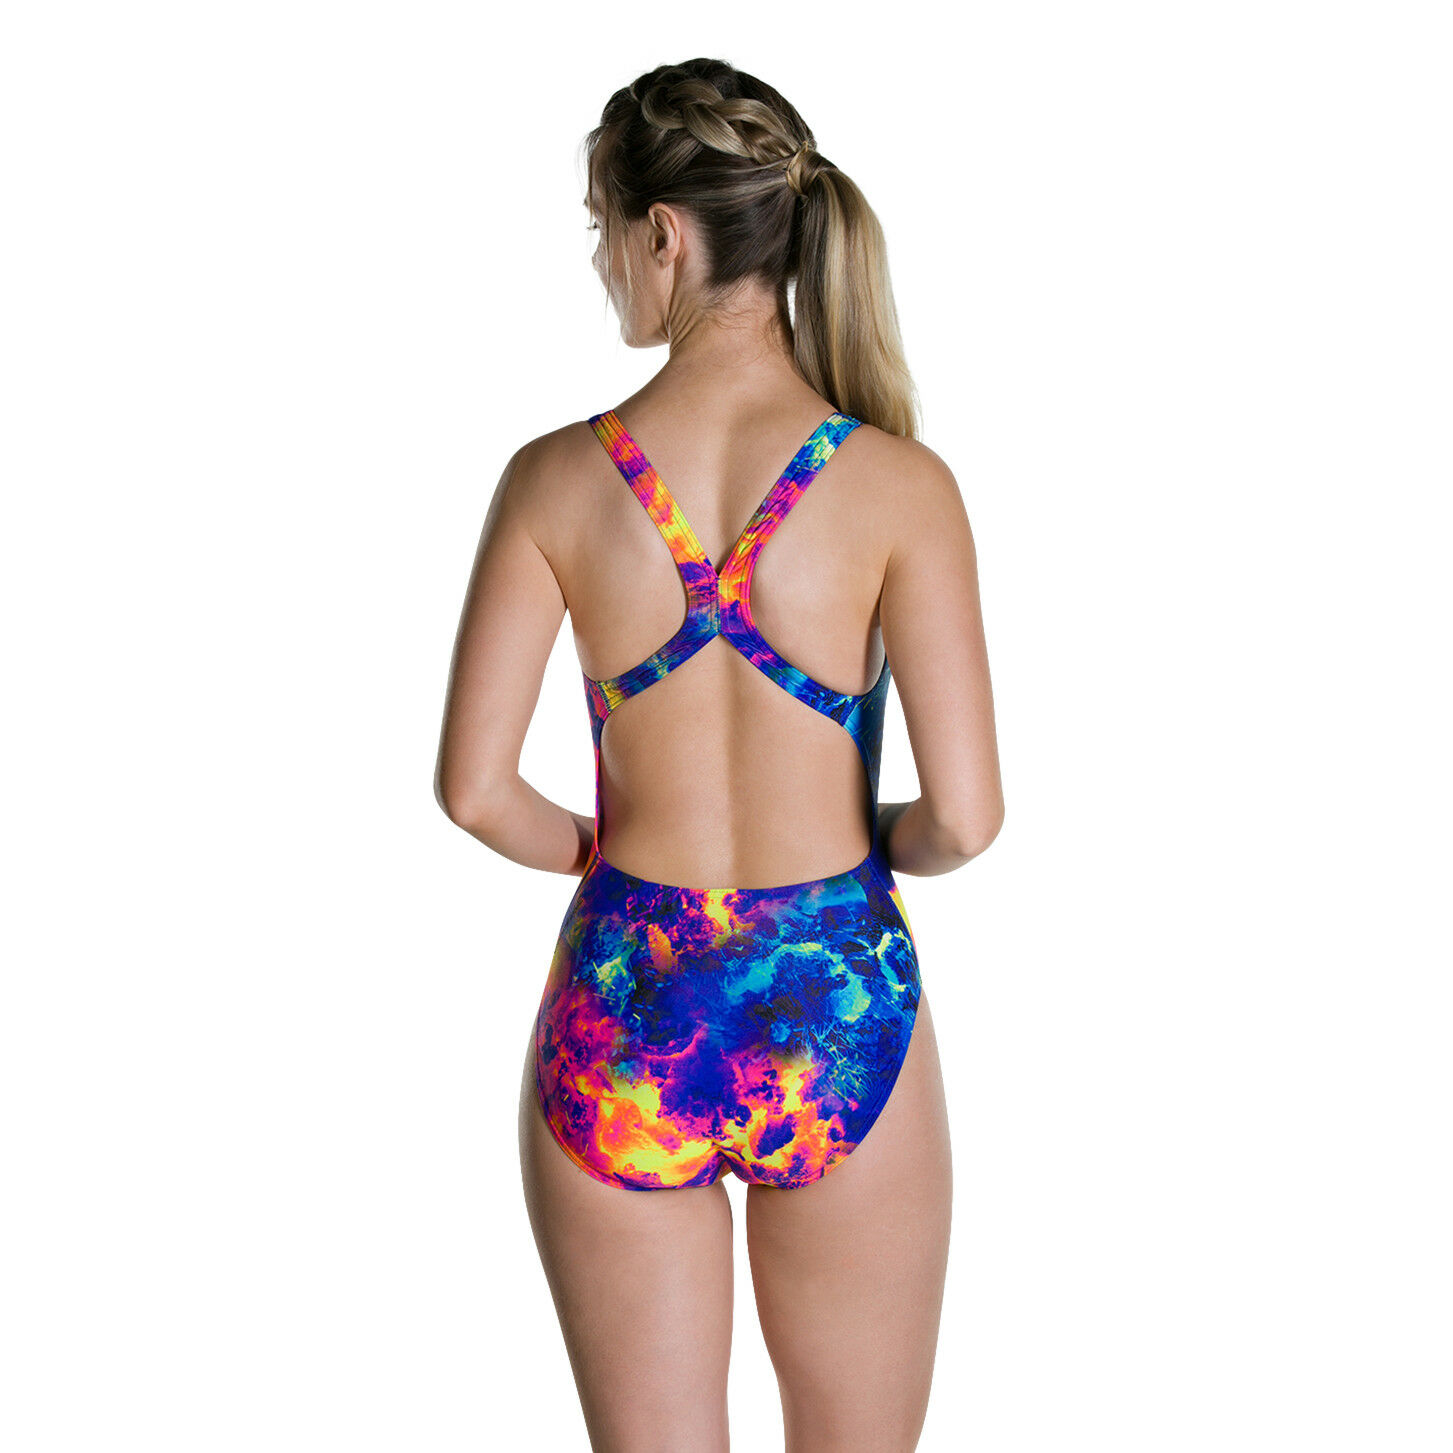 SPEEDO damen SWIMSUIT.NEW SWIMSUIT.NEW SWIMSUIT.NEW FIRESPLASH DIGITAL ENDURANCE SWIMMING COSTUME 8W 550 | Up-to-date Styling  | Guter Markt  | Outlet Store Online  5798f8